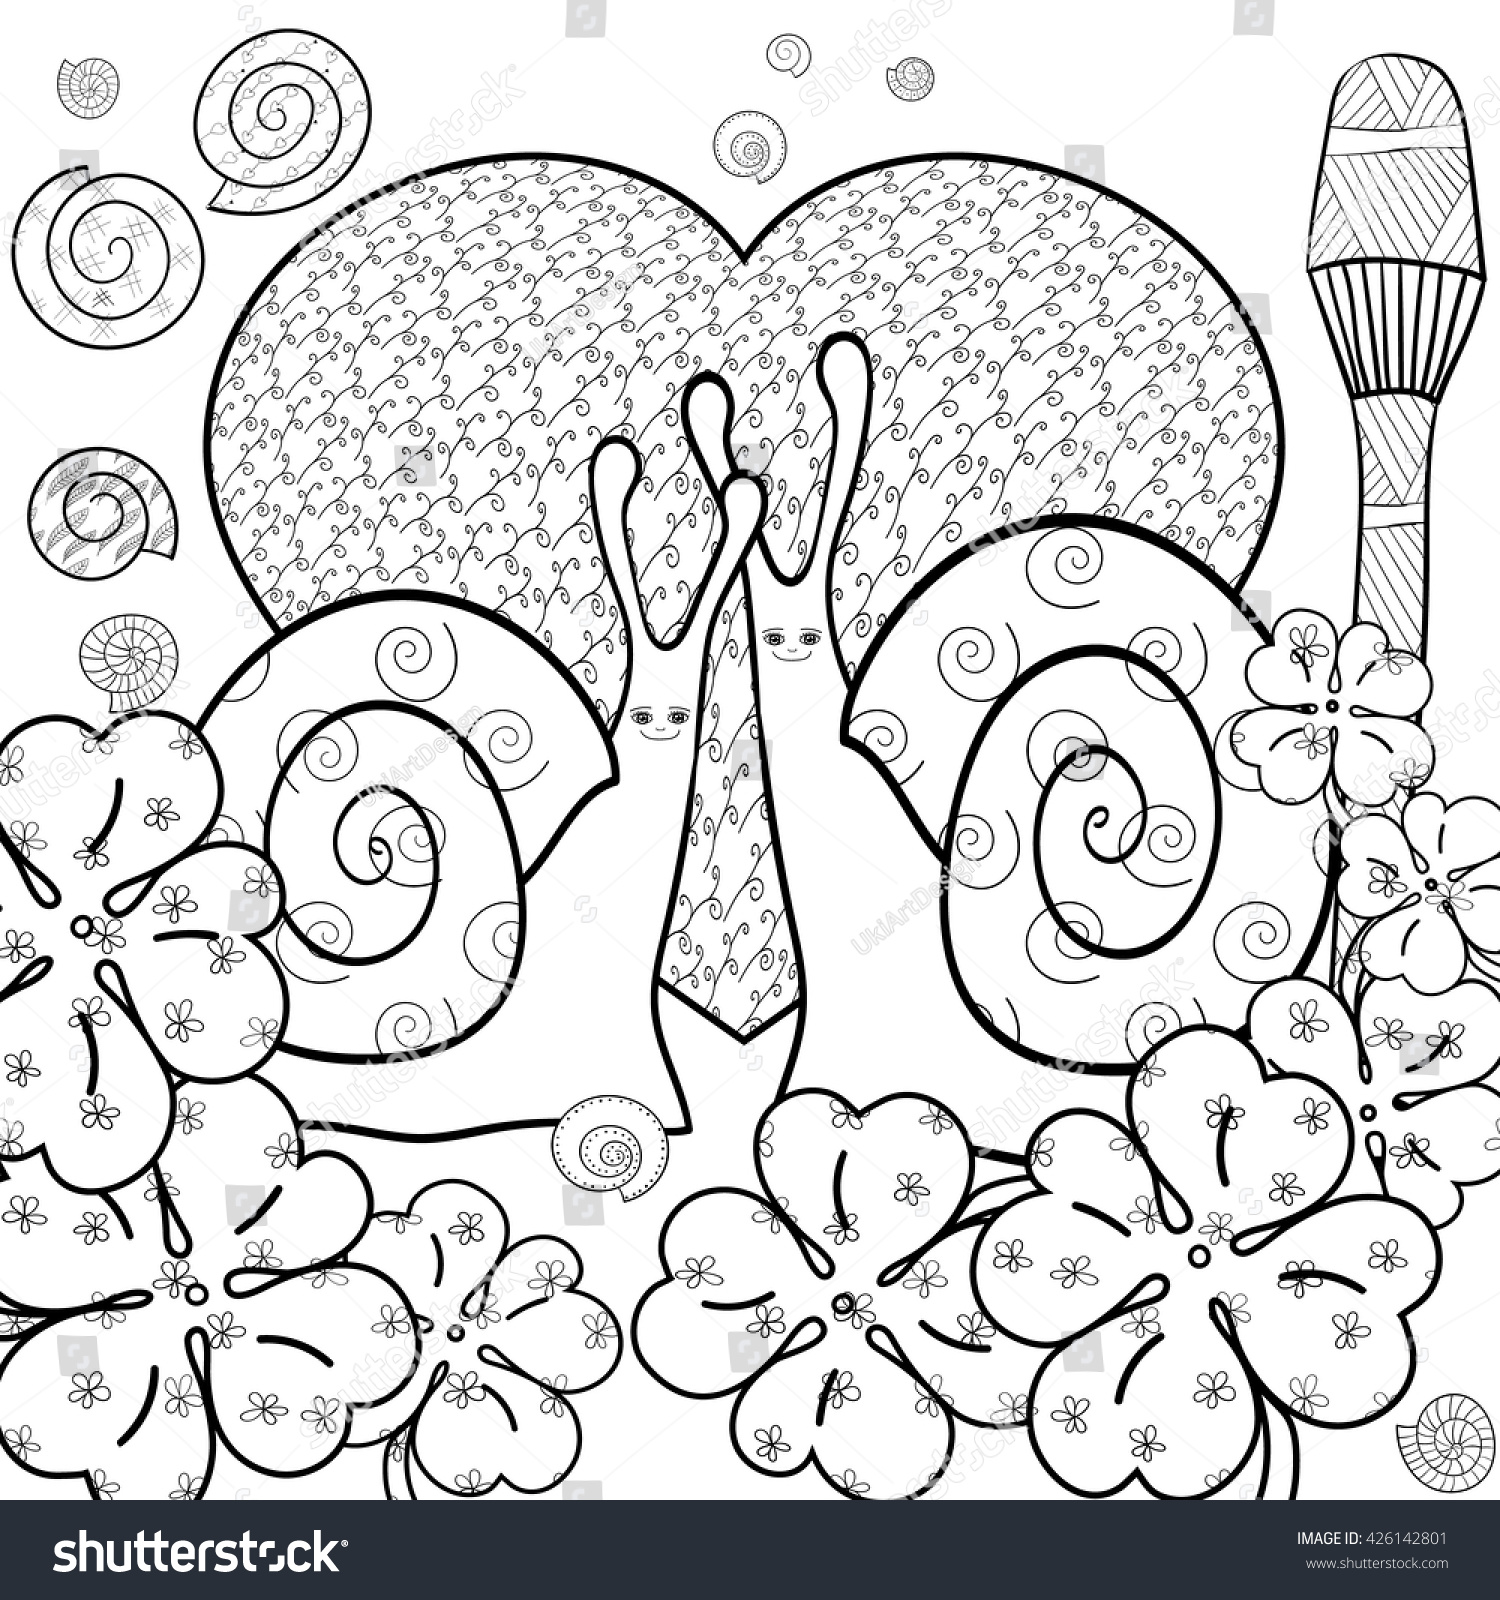 Whimsical designs coloring book - Cute Snail Adult Coloring Book Page Snails In Whimsical Garden Big Heart Summer